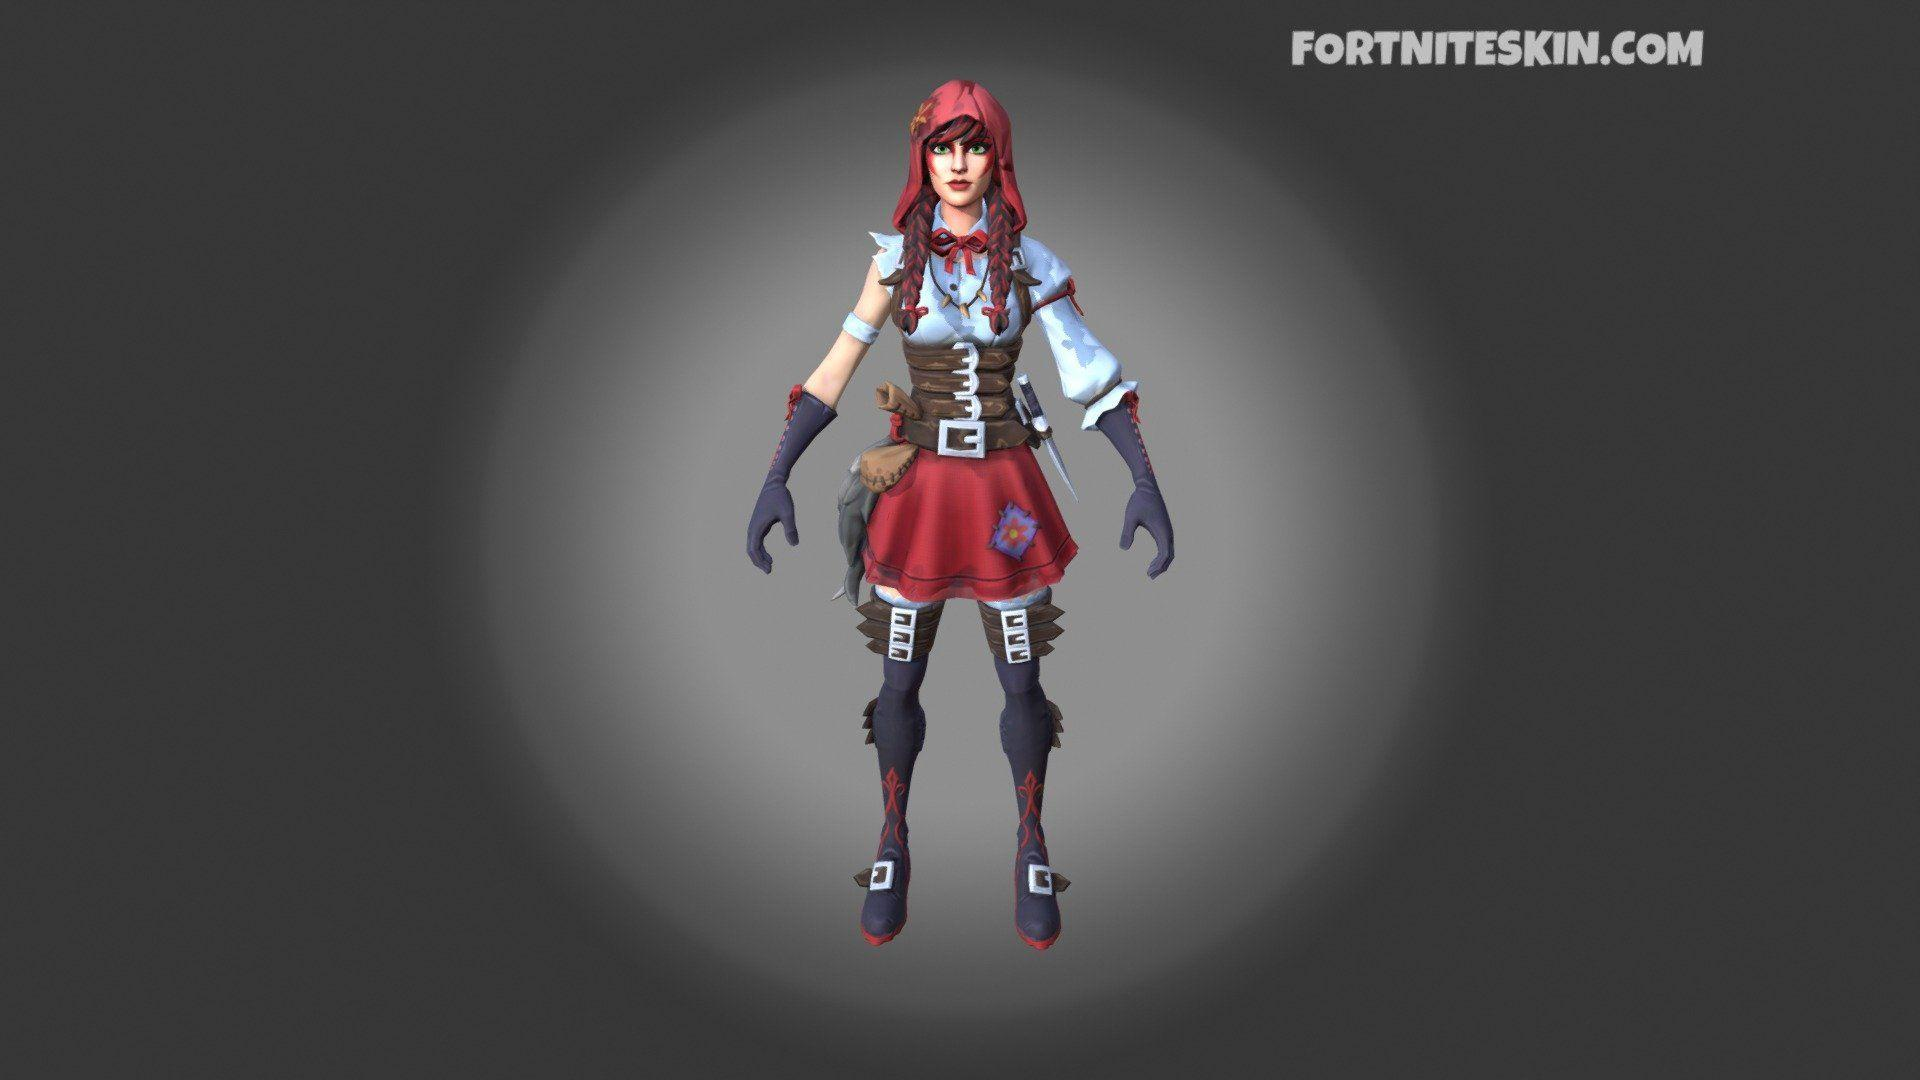 3D models tagged fortnite-outfit - Sketchfab